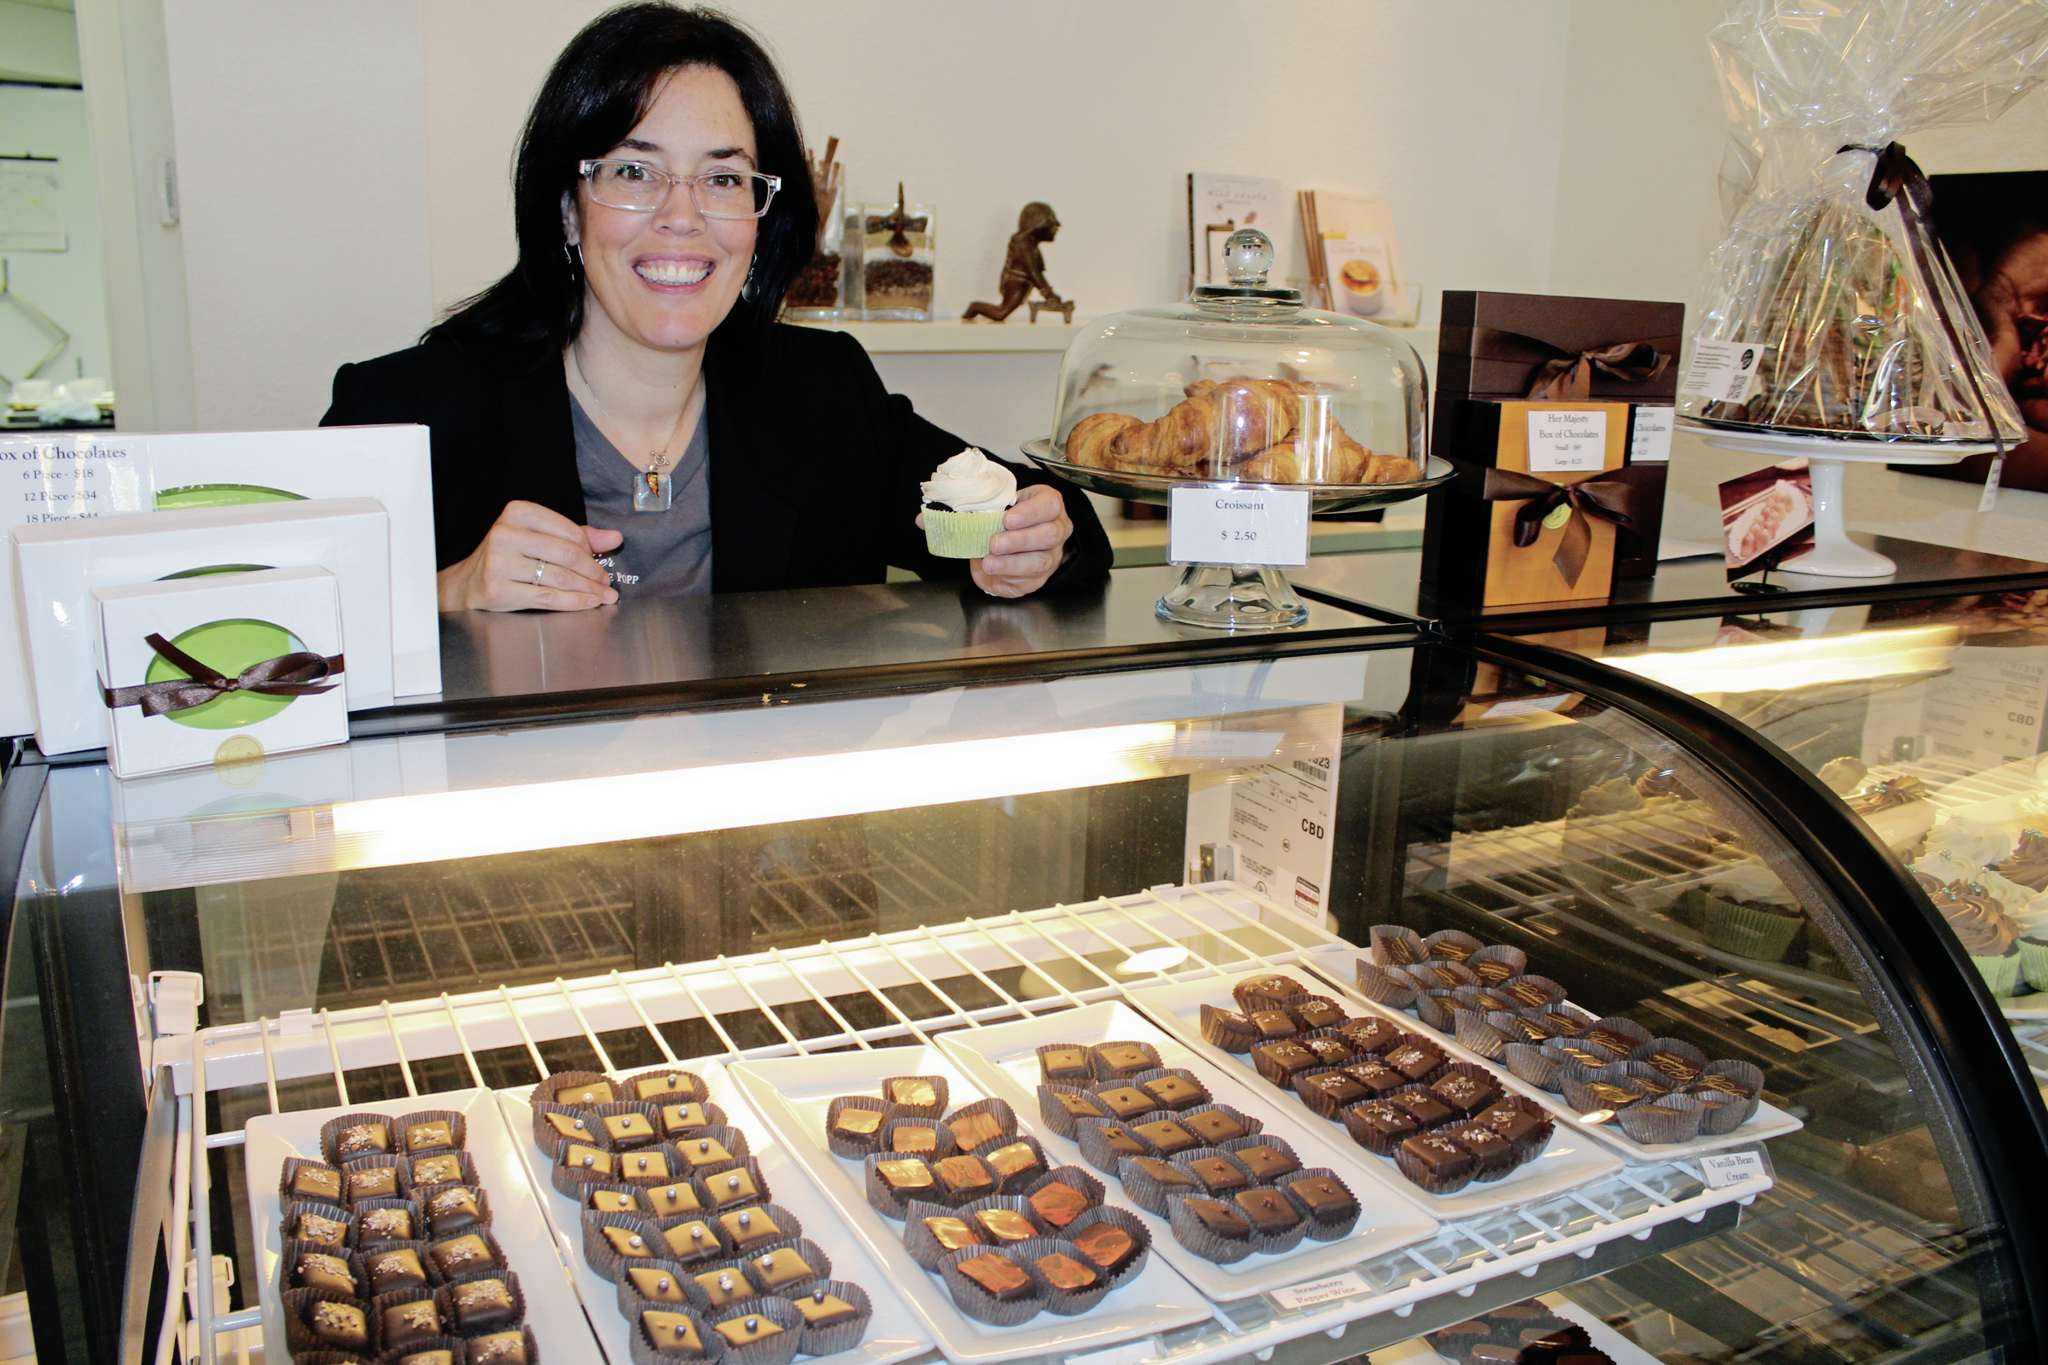 Constance Menzies, pictured here at Chocolatier Constance Popp (180 Provencher Blvd.), is creating chocolates celebrating 12 notable Manitobans for Manitoba Day.